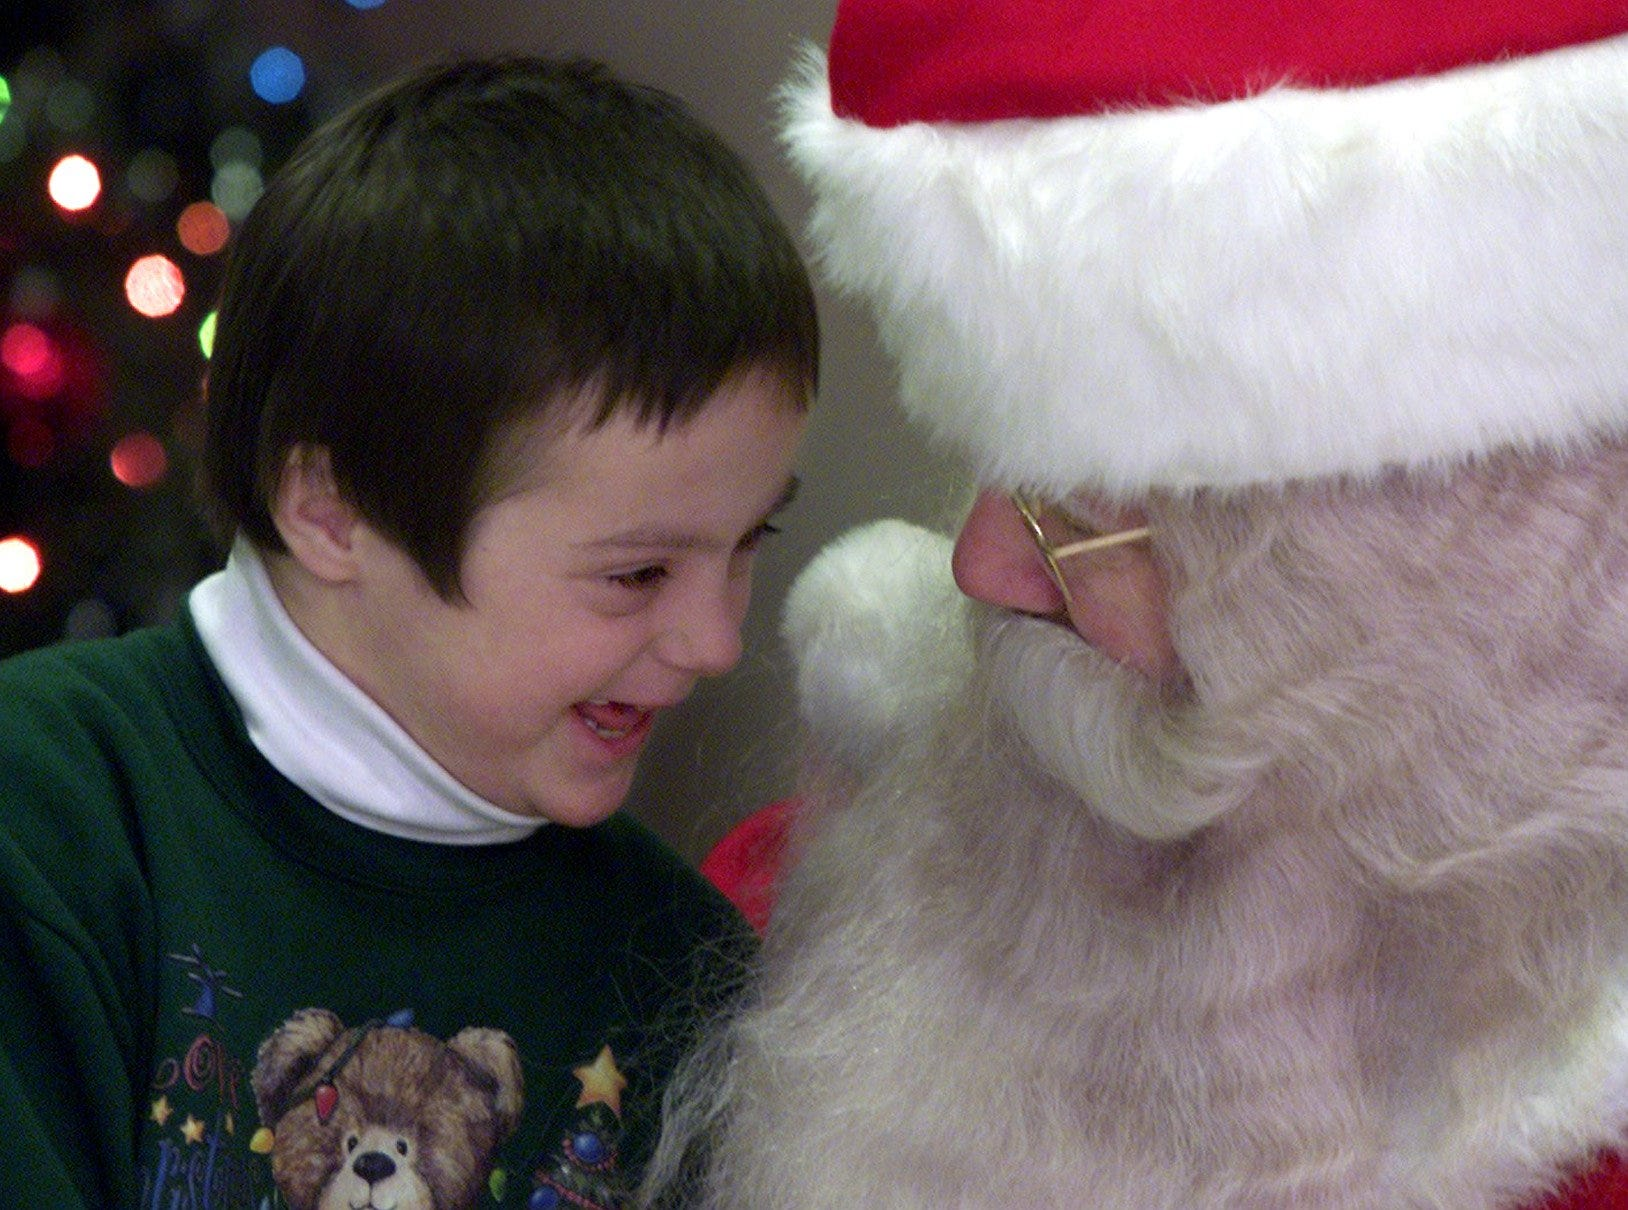 22.12.2000, 1A:  Zachary Hackett, 9, of Horseheads meets Santa Claus, portrayed by Bill Connelly, on Saturday at the Elmira Heights Fire Department.